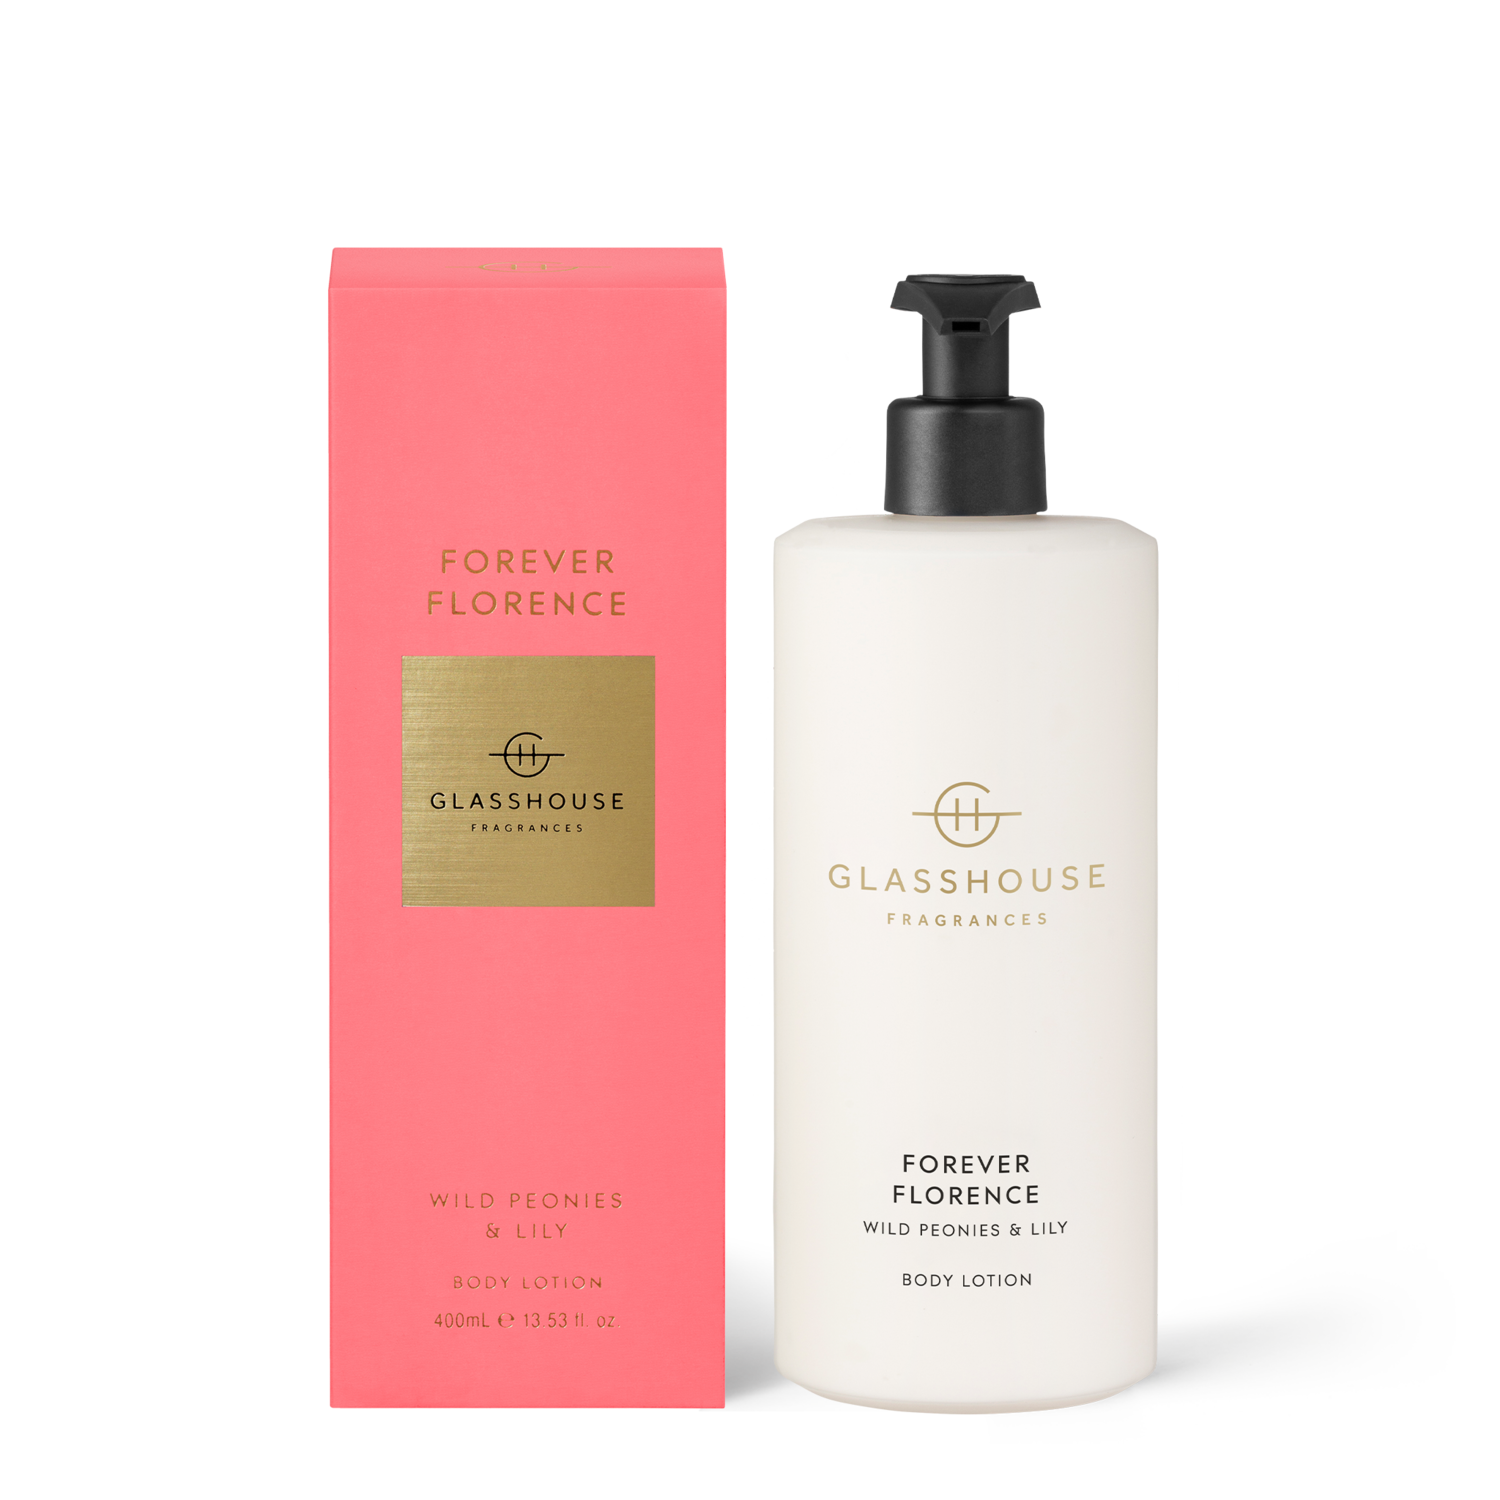 Forever Florence Body Lotion 400ml